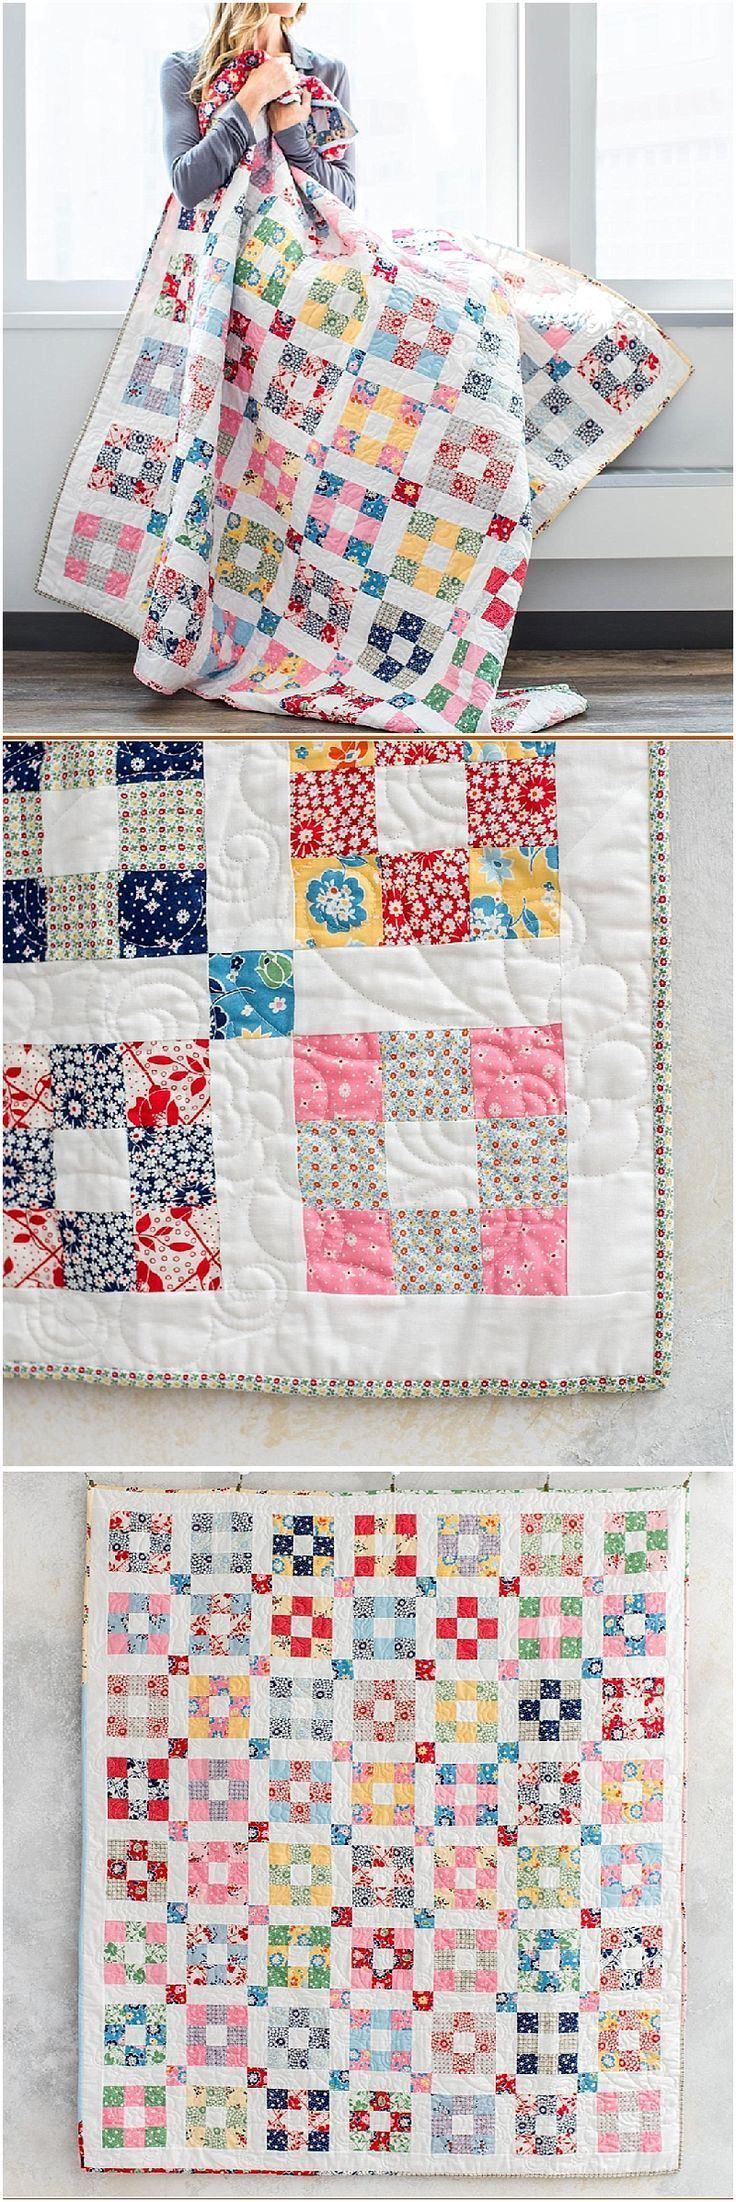 Hopscotch 1930's revival quilt by Craftsy. Easy 9 patch blocks ... : hopscotch quilt pattern - Adamdwight.com